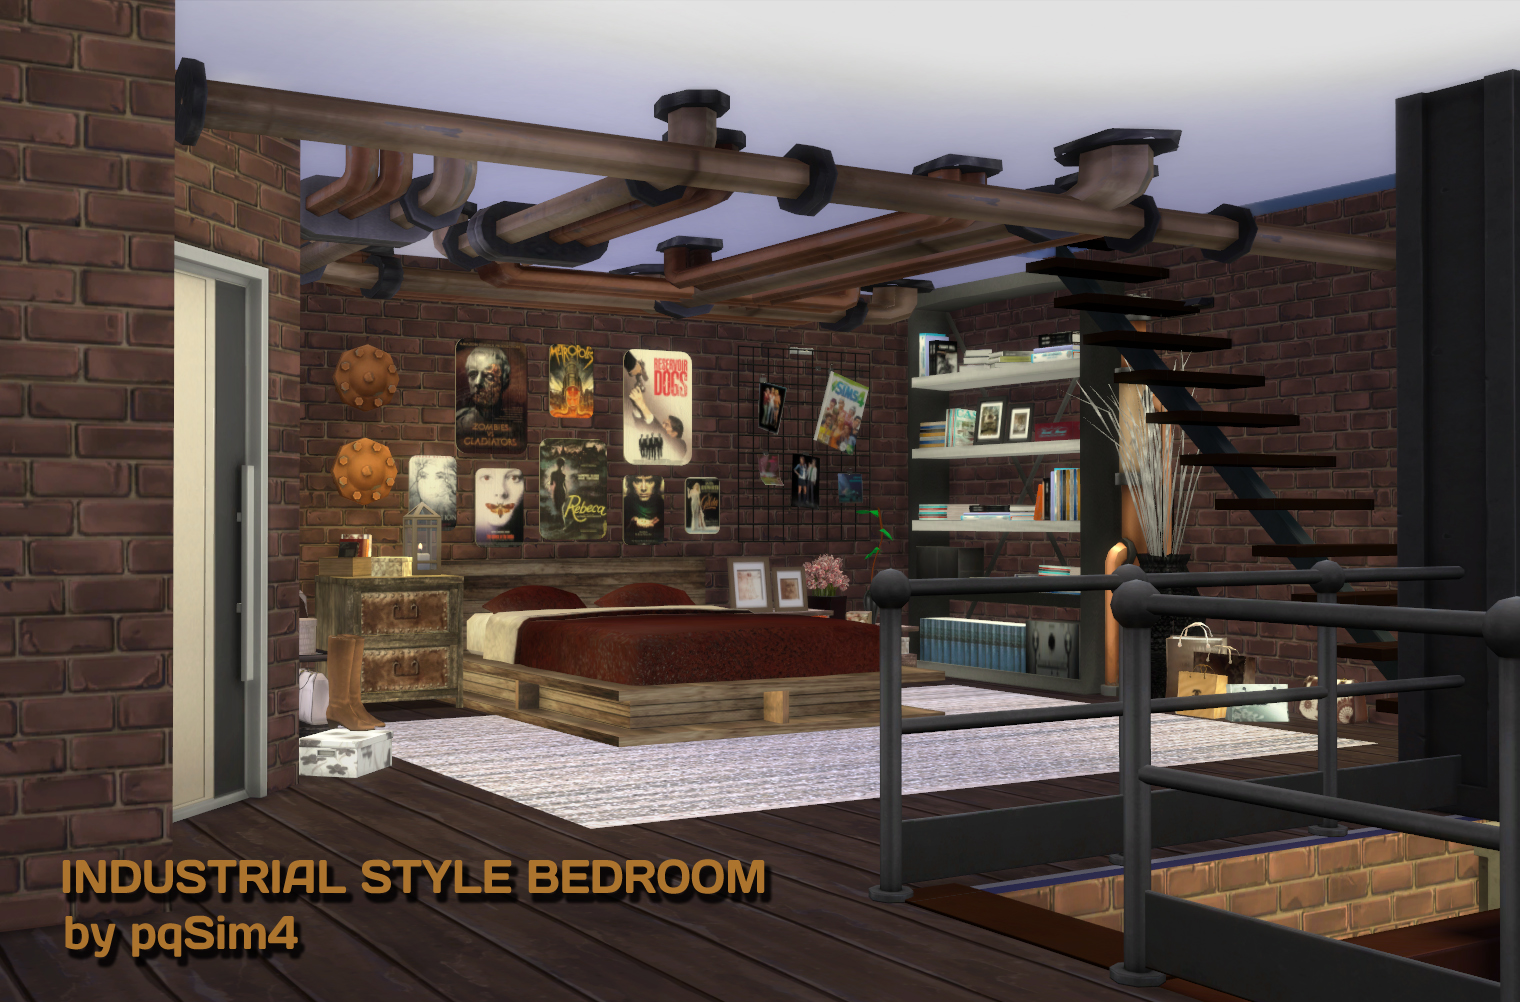 My sims 4 blog industrial style bedroom by pqsim4 - Industrial bedroom furniture sets ...